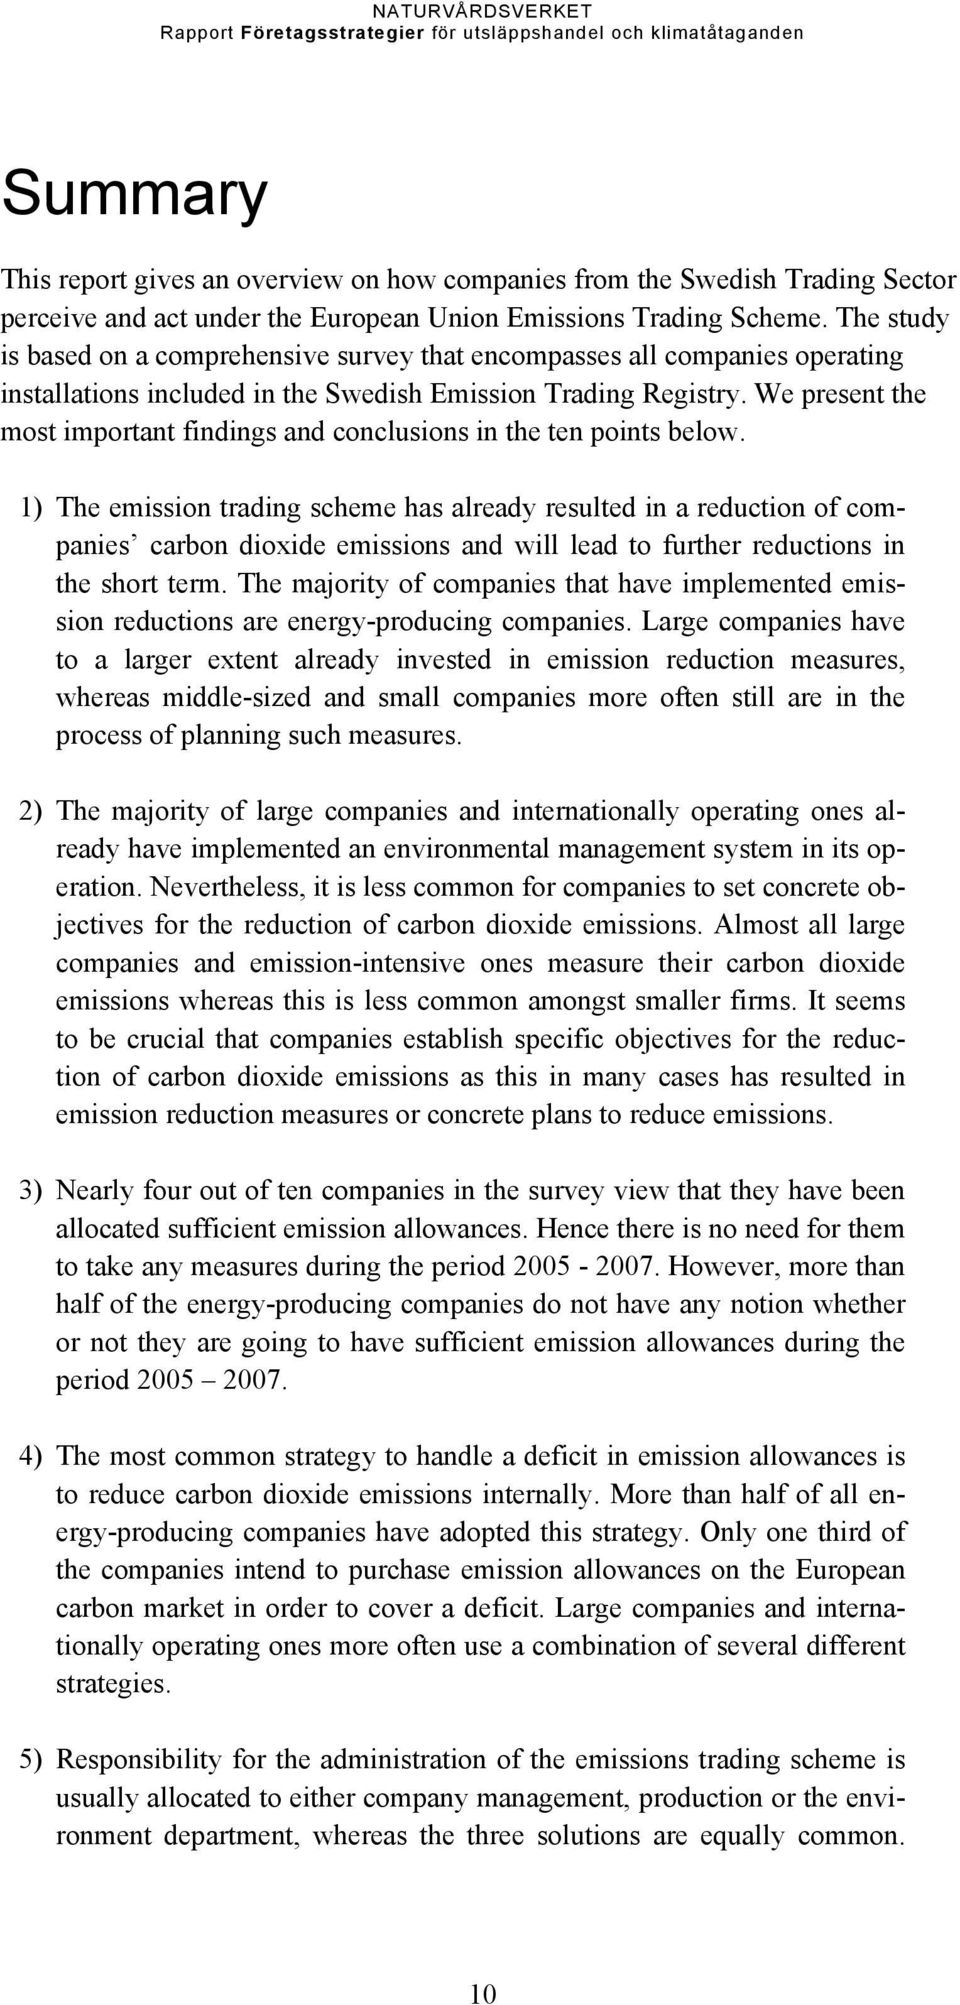 We present the most important findings and conclusions in the ten points below.